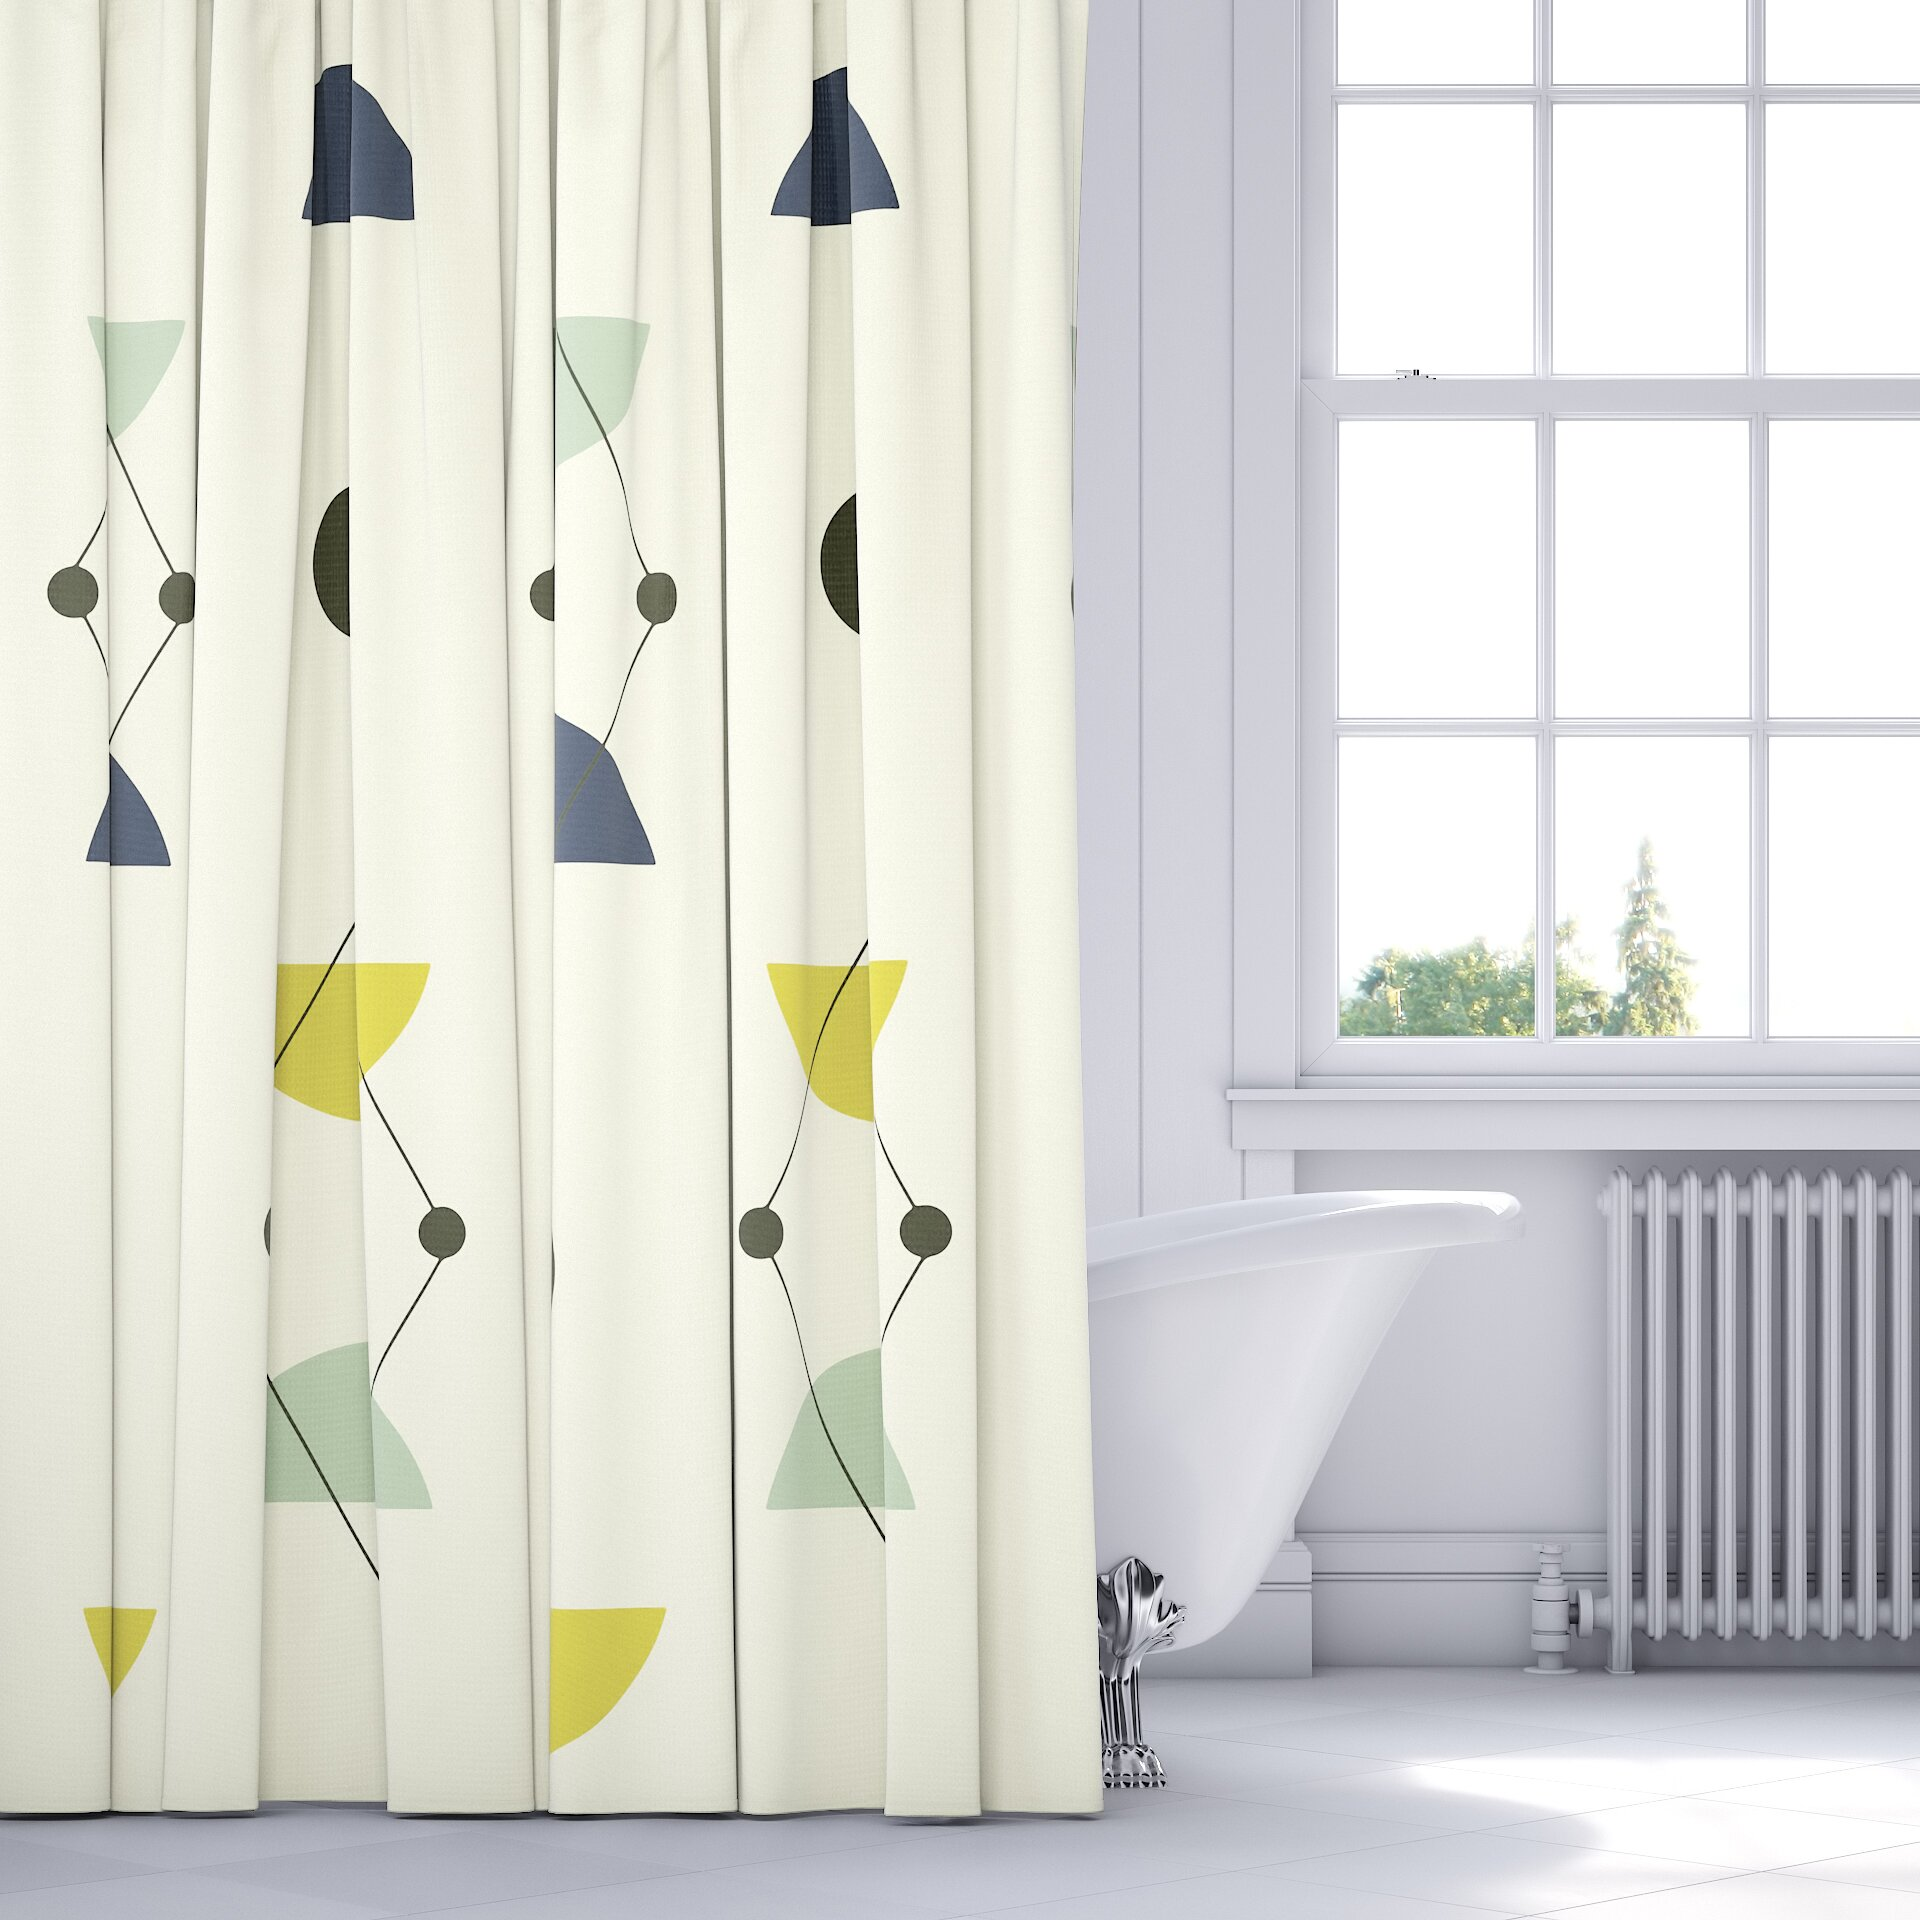 https://secure.img.wfrcdn.com/lf/maxsquare/hash/1261/30271859/1/Paseo-Shower-Curtain-CST42611.jpg